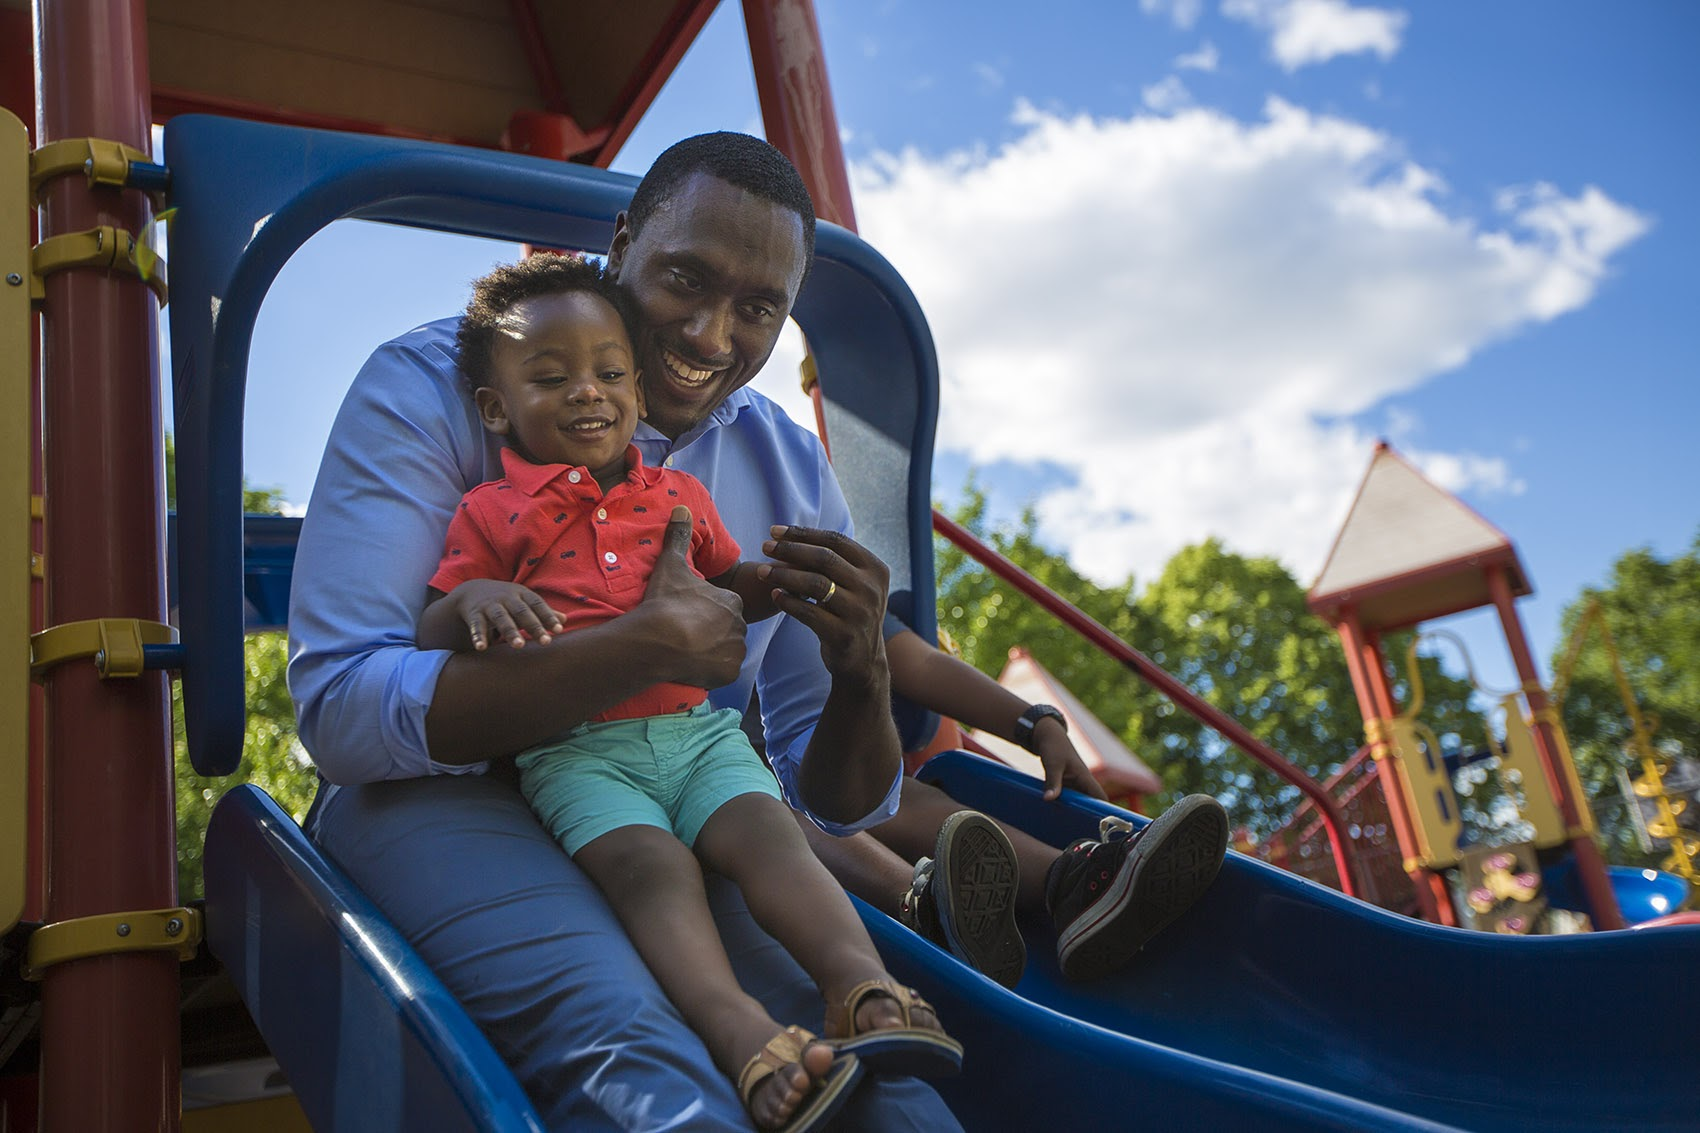 Charles Daniels, founder and CEO of the Boston-based nonprofit Fathers' Uplift, rides down a slide with his 1-year-old son Clayton in the Thetford Evans Playground in Dorchester. (Jesse Costa/WBUR)